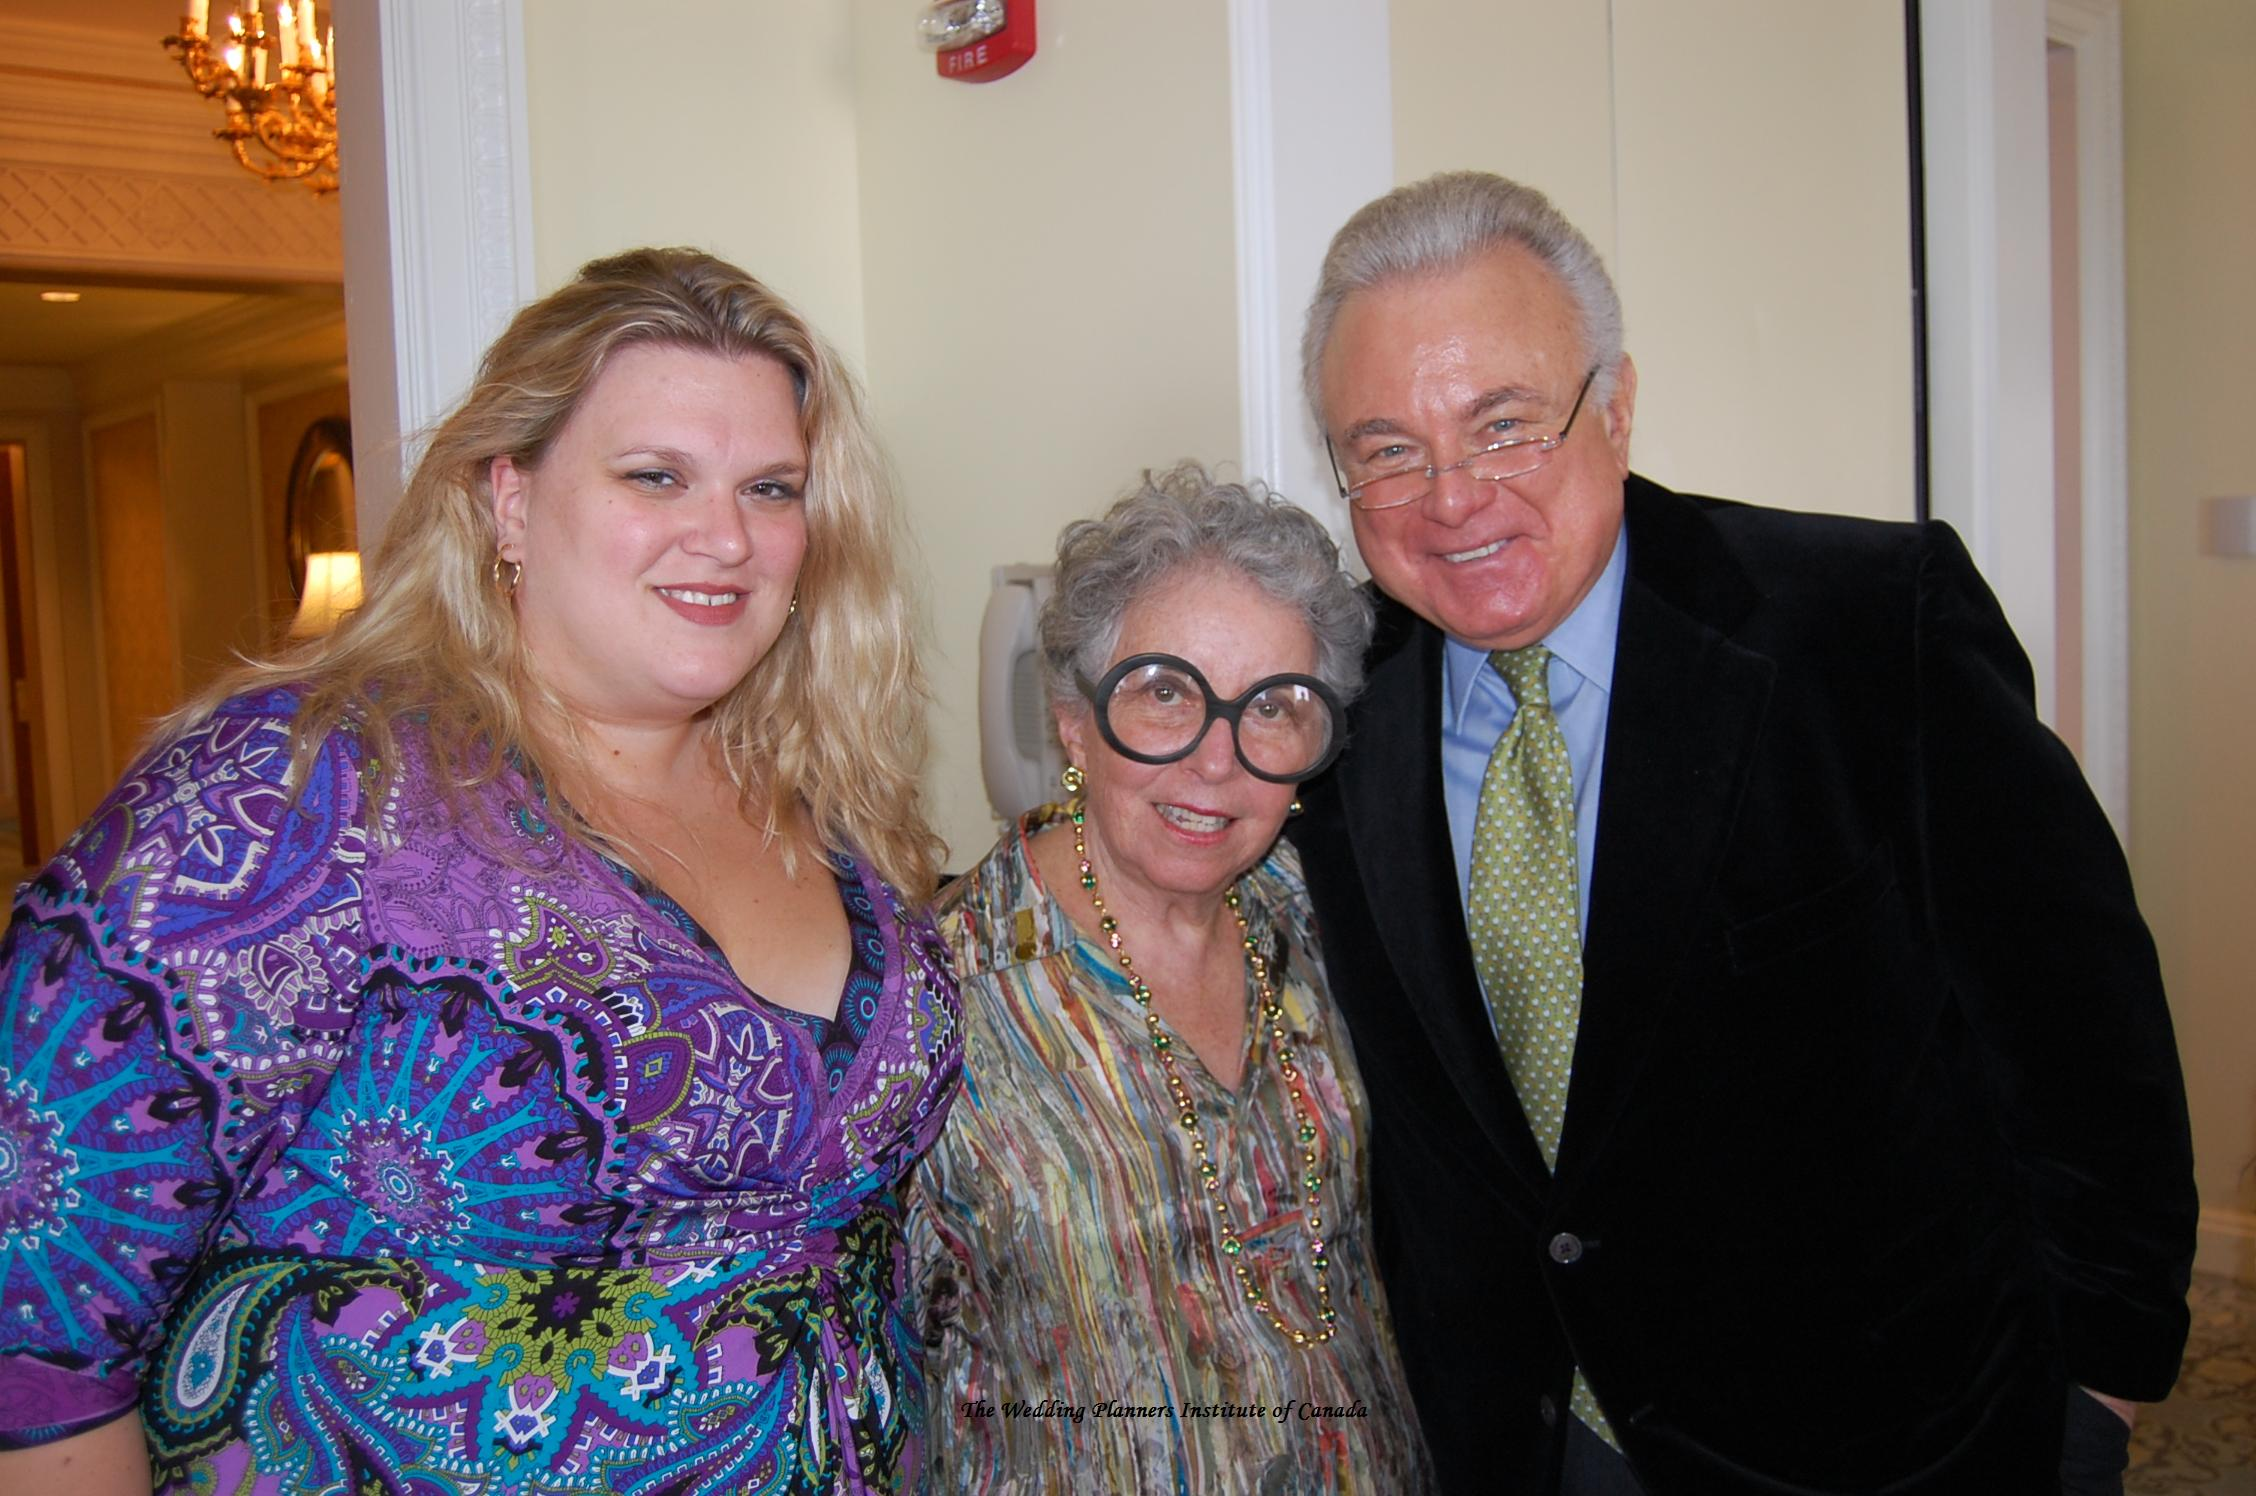 Danielle Andrews Sunkel with Sylvia Weinstock and Ronnie Rothstein